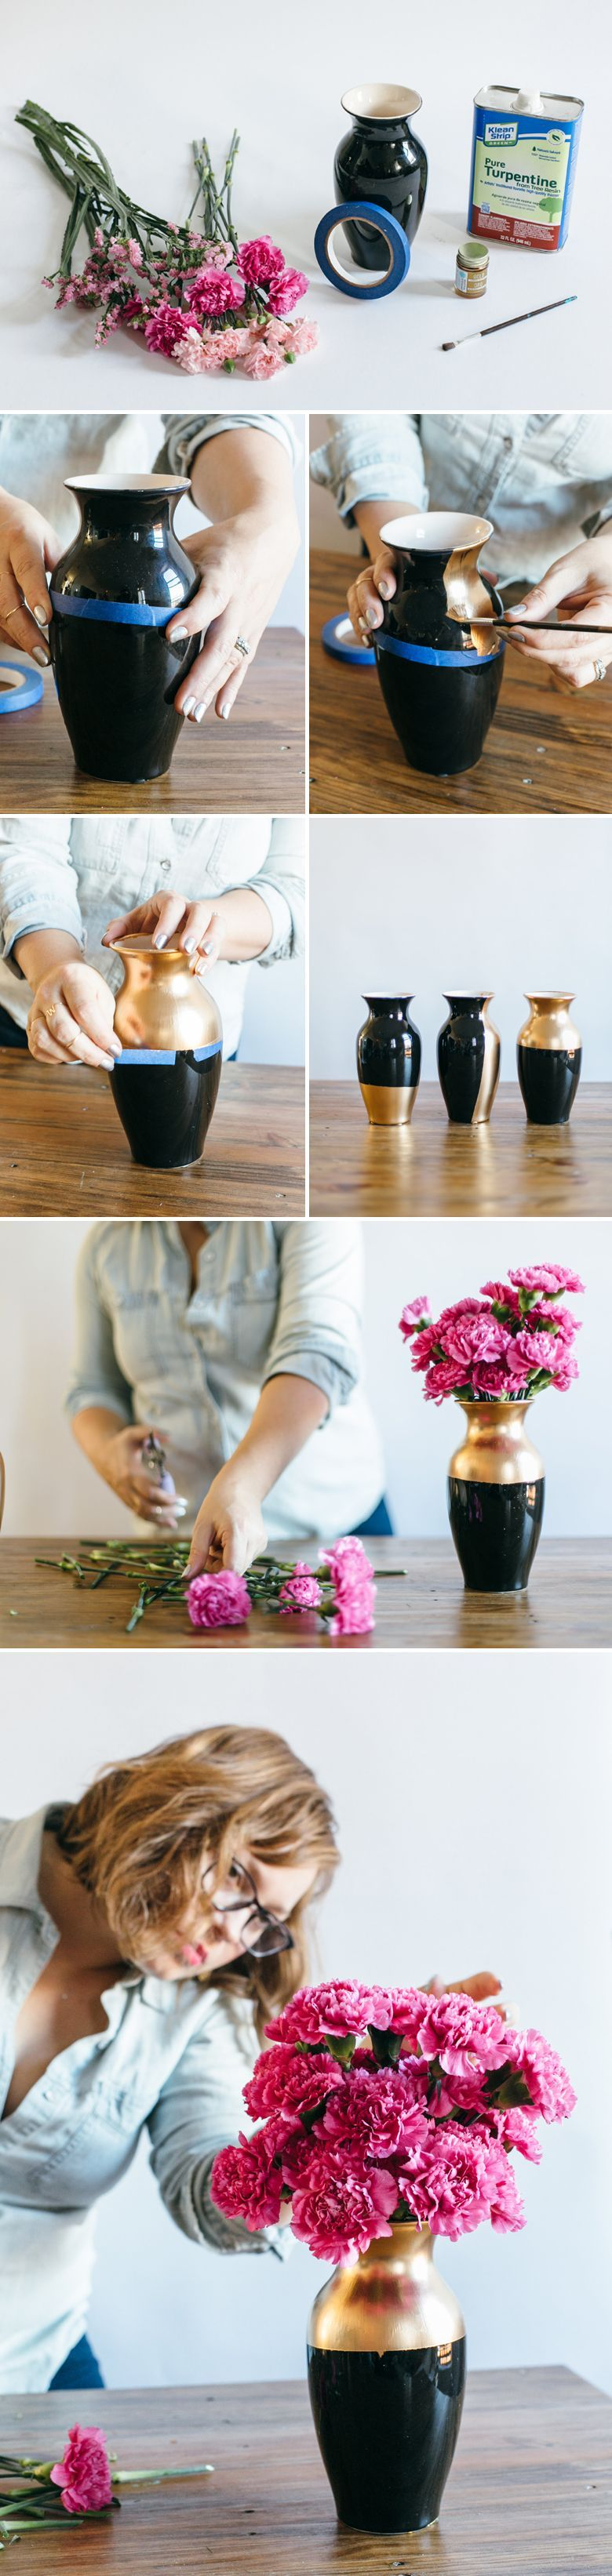 Diy wedding centerpieces gilded gold vases cheapest flowers